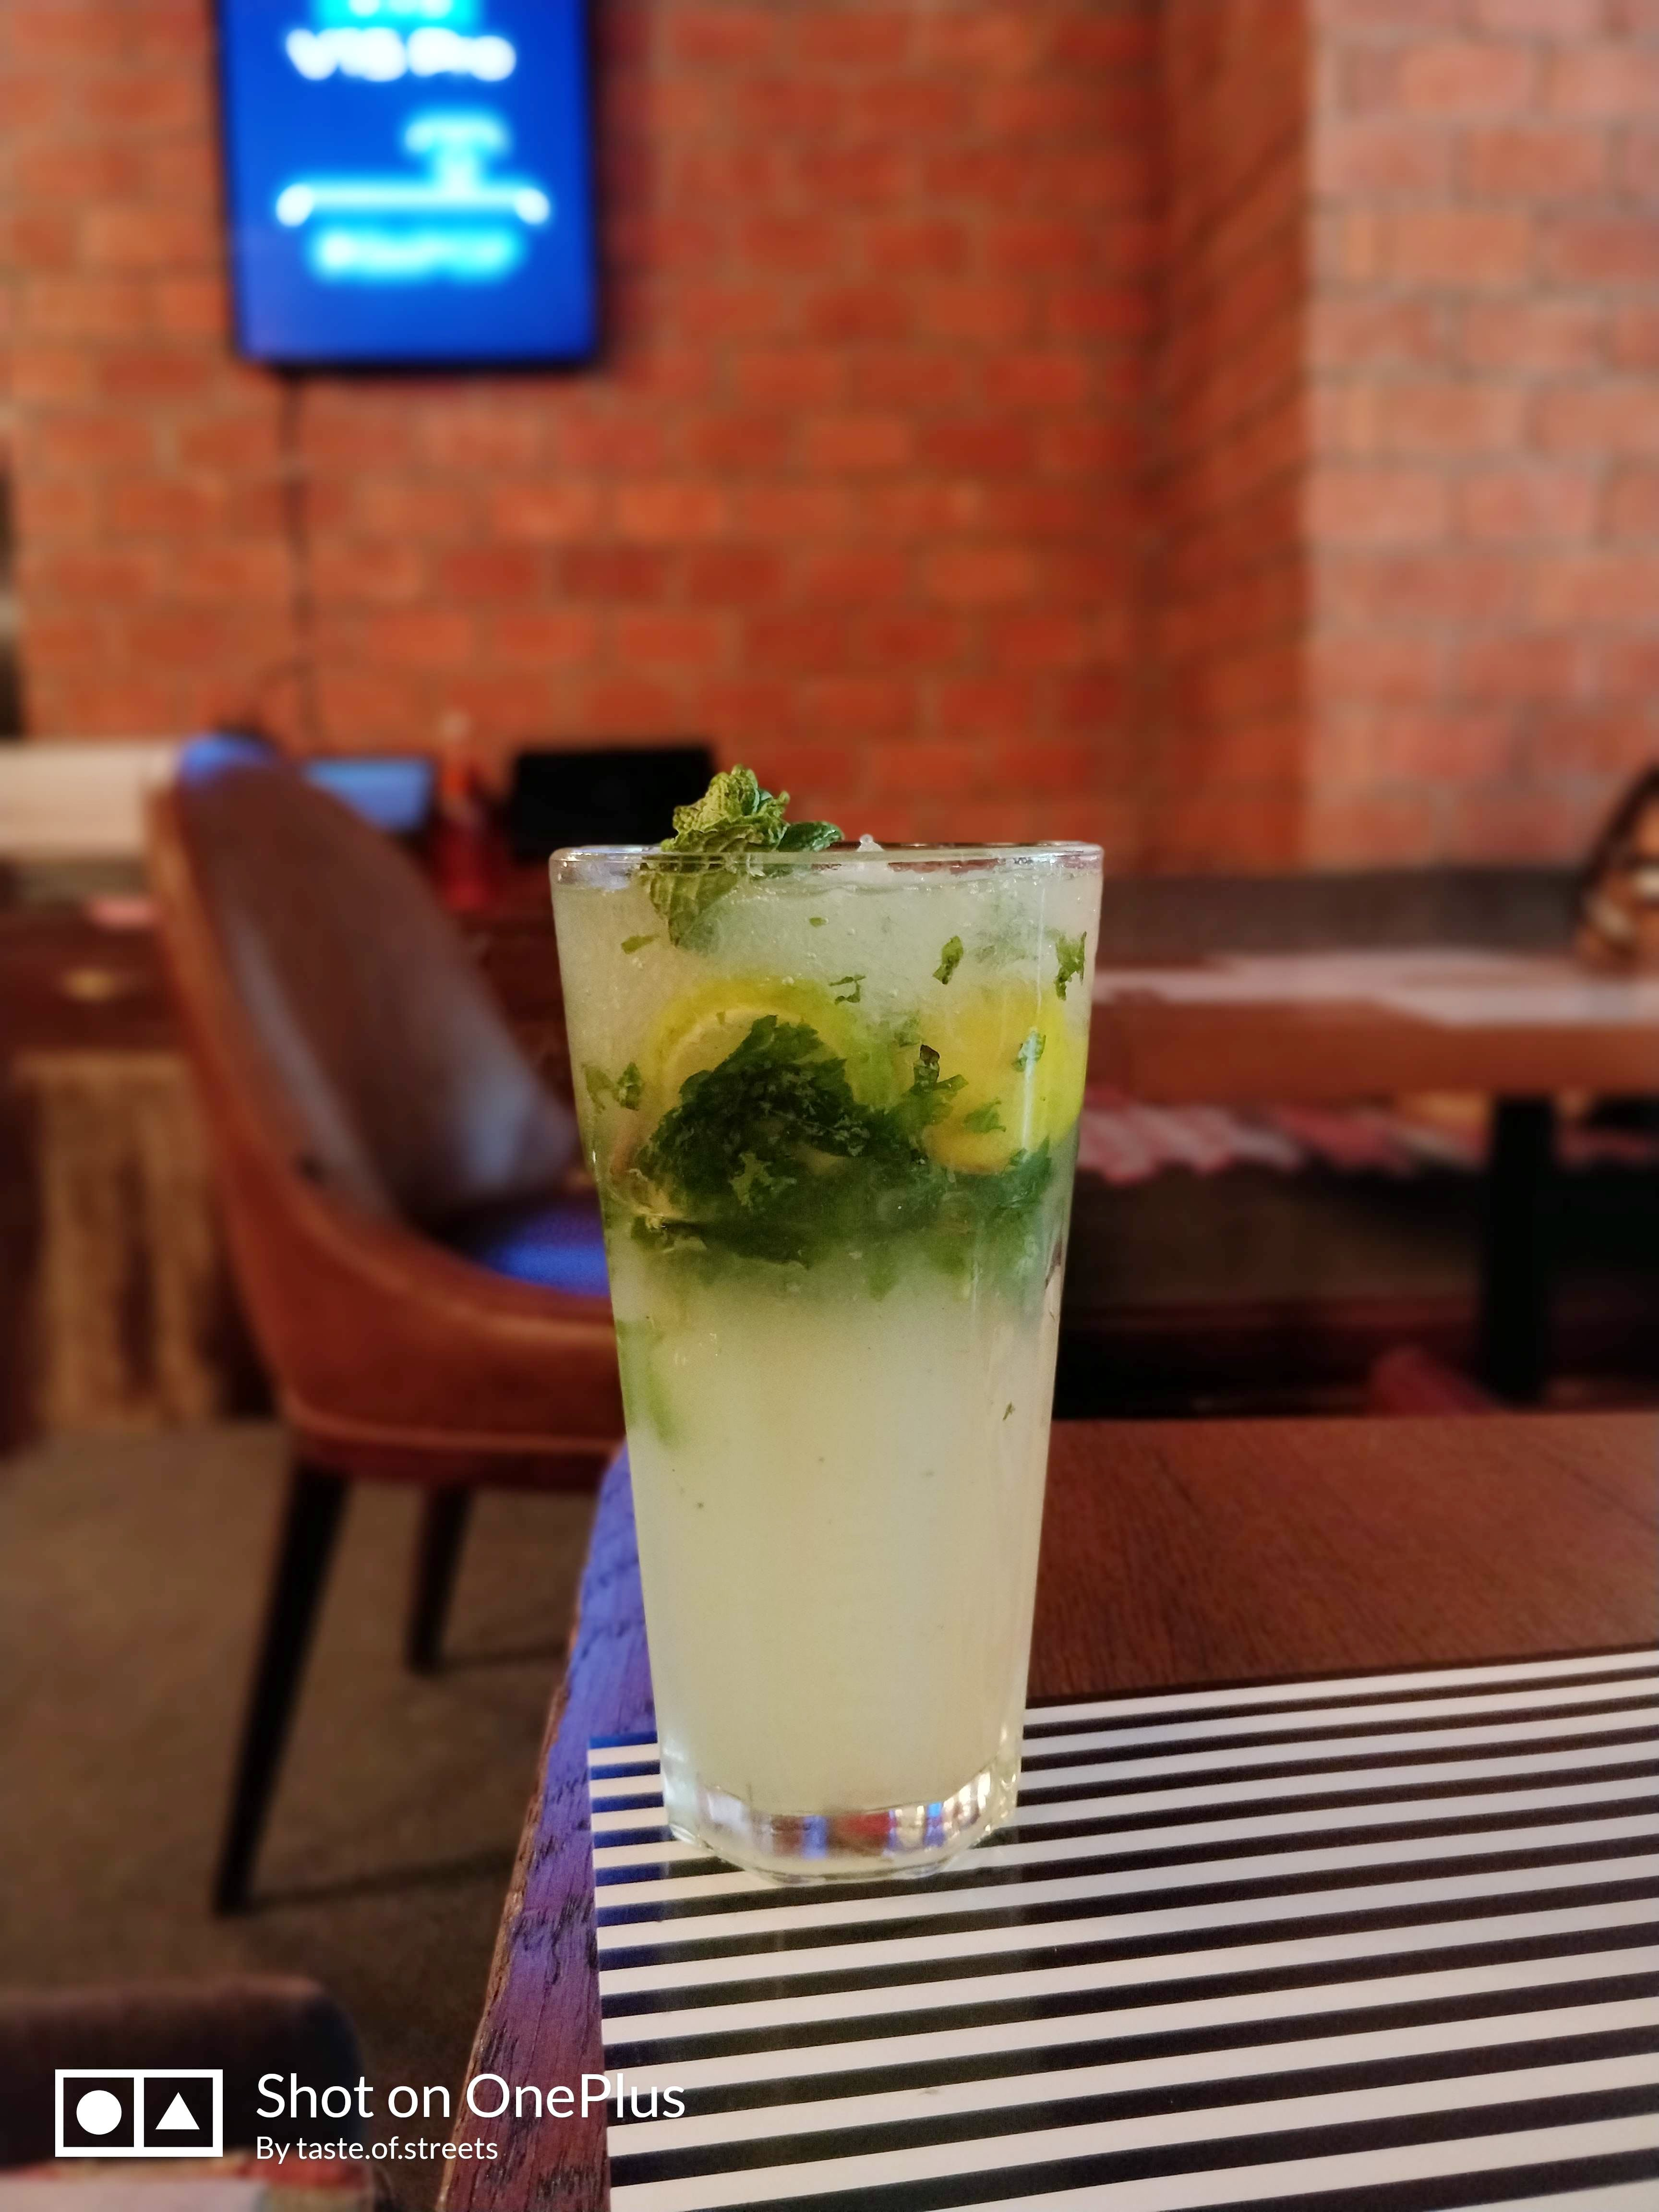 Drink,Mojito,Non-alcoholic beverage,Food,Cocktail garnish,Cocktail,Distilled beverage